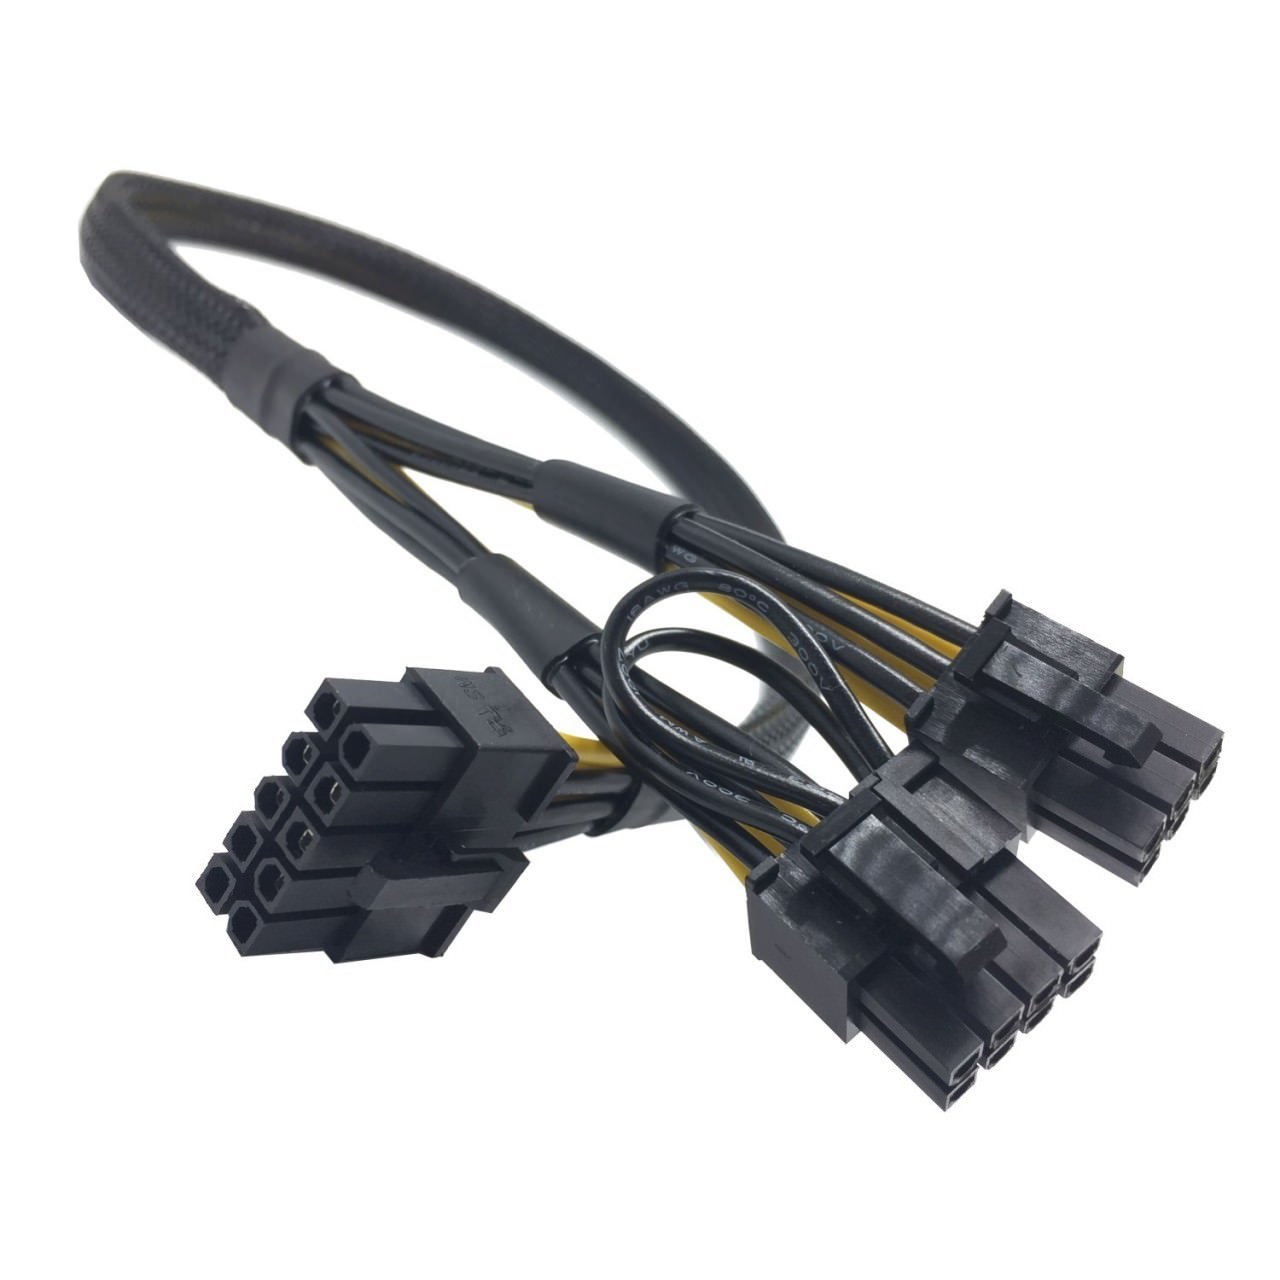 New 10pin to 6+8pin Power Adapter Cable for HP DL580 G7 and GPU 50cm